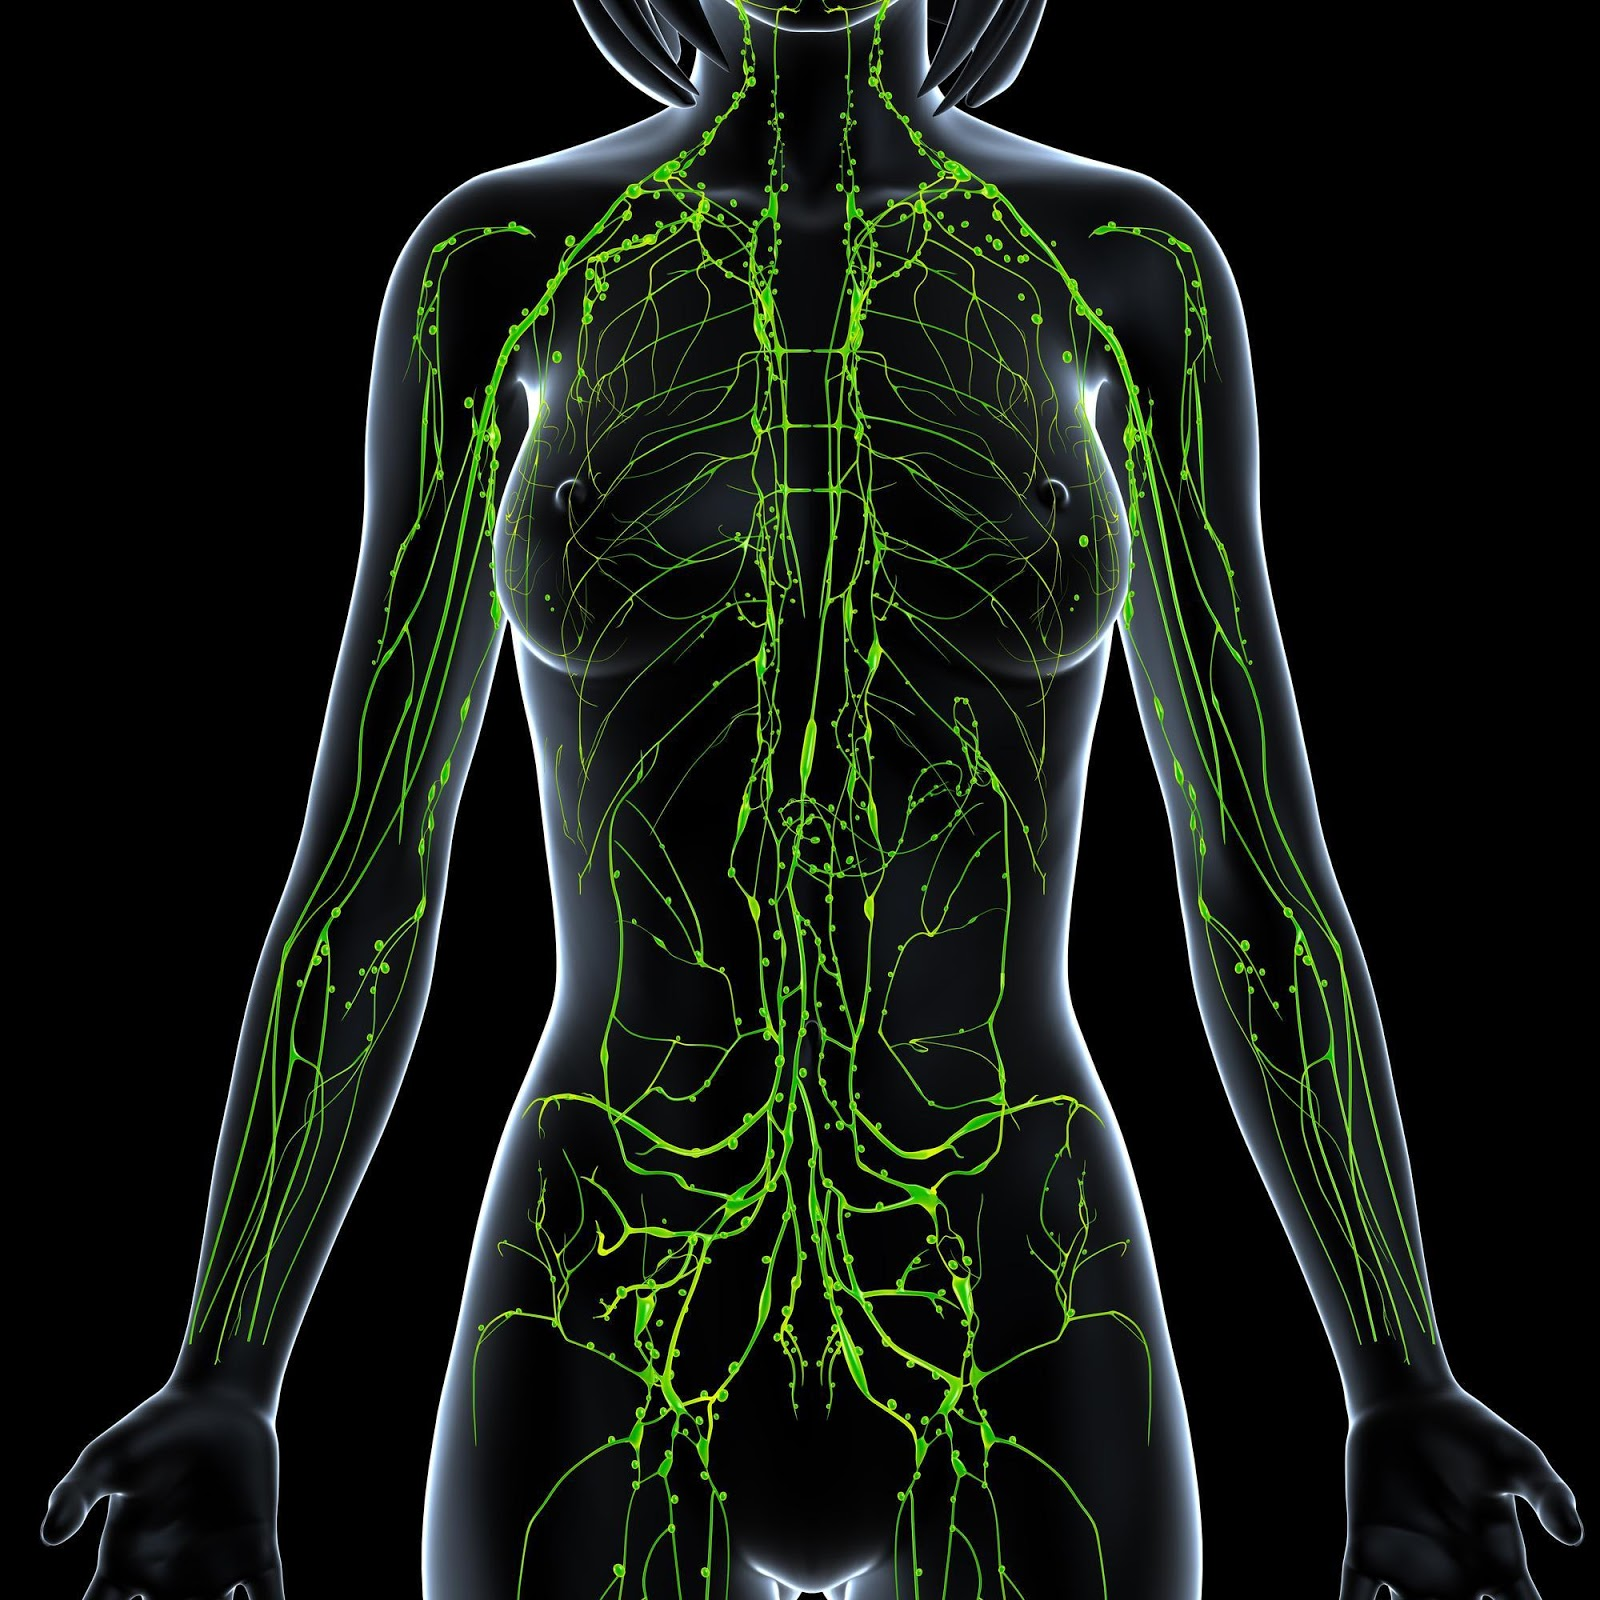 Lymphatic System In Woman's Body